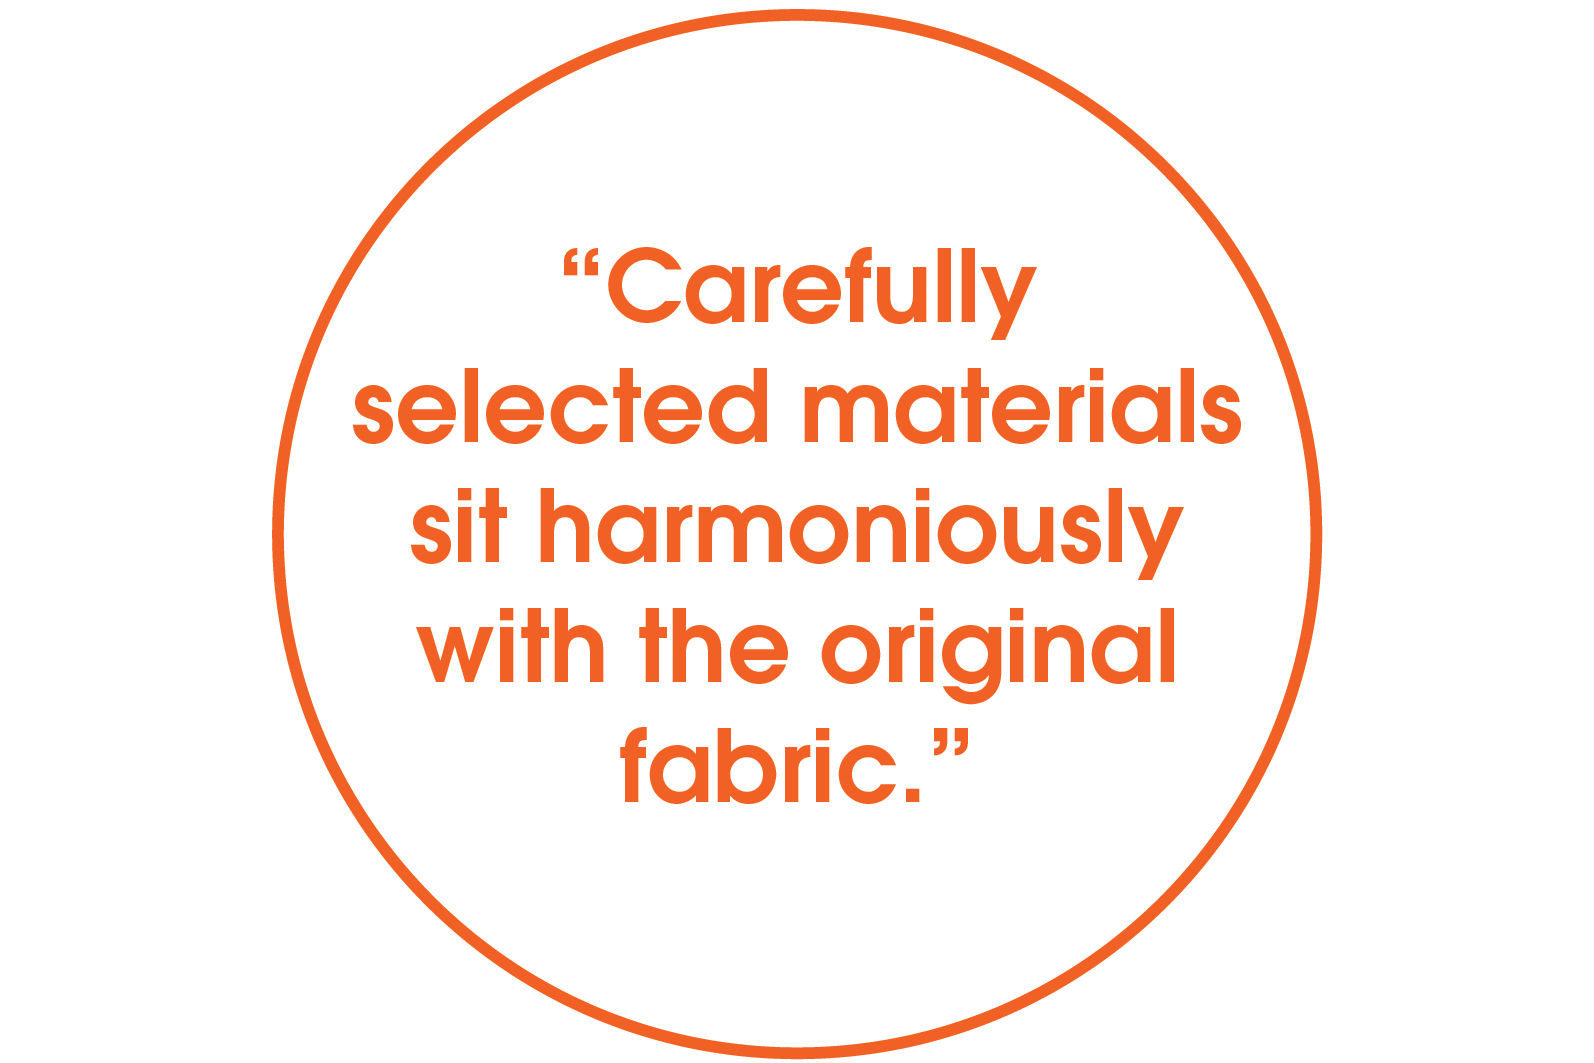 carefully selected materials quote